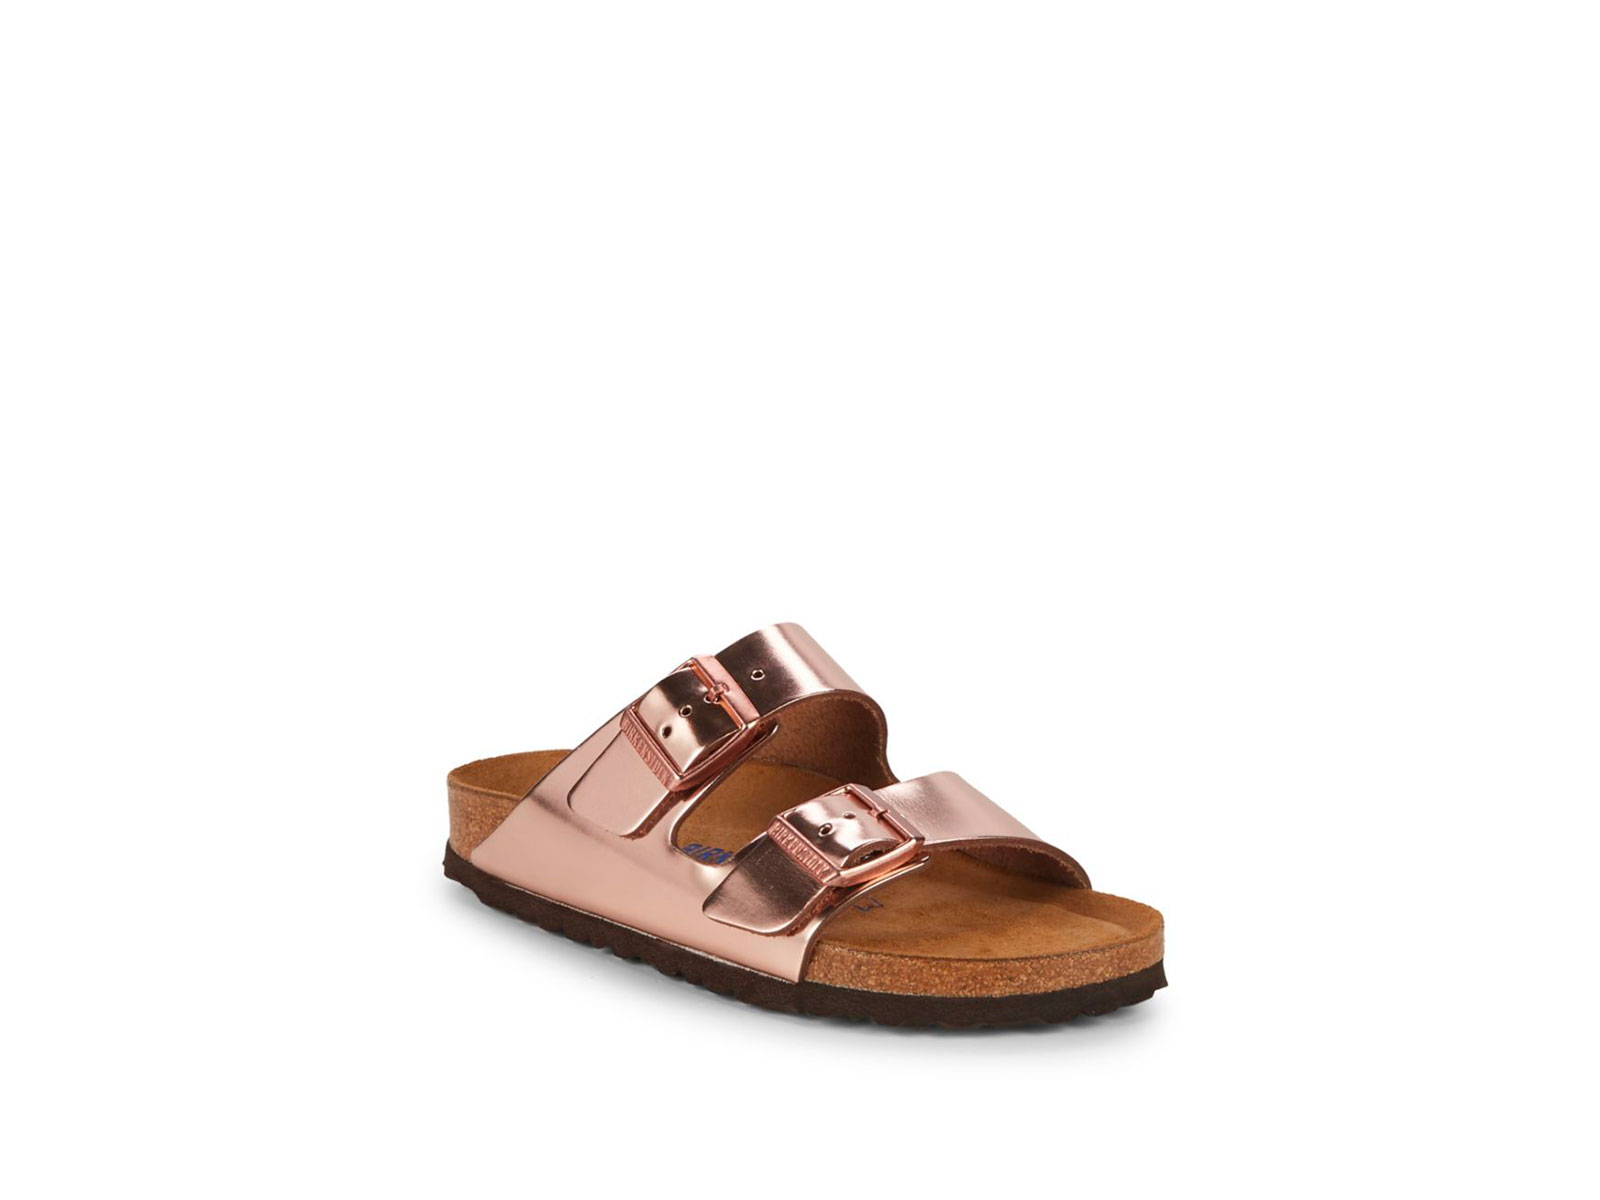 birkenstock metallic slip-on sandals